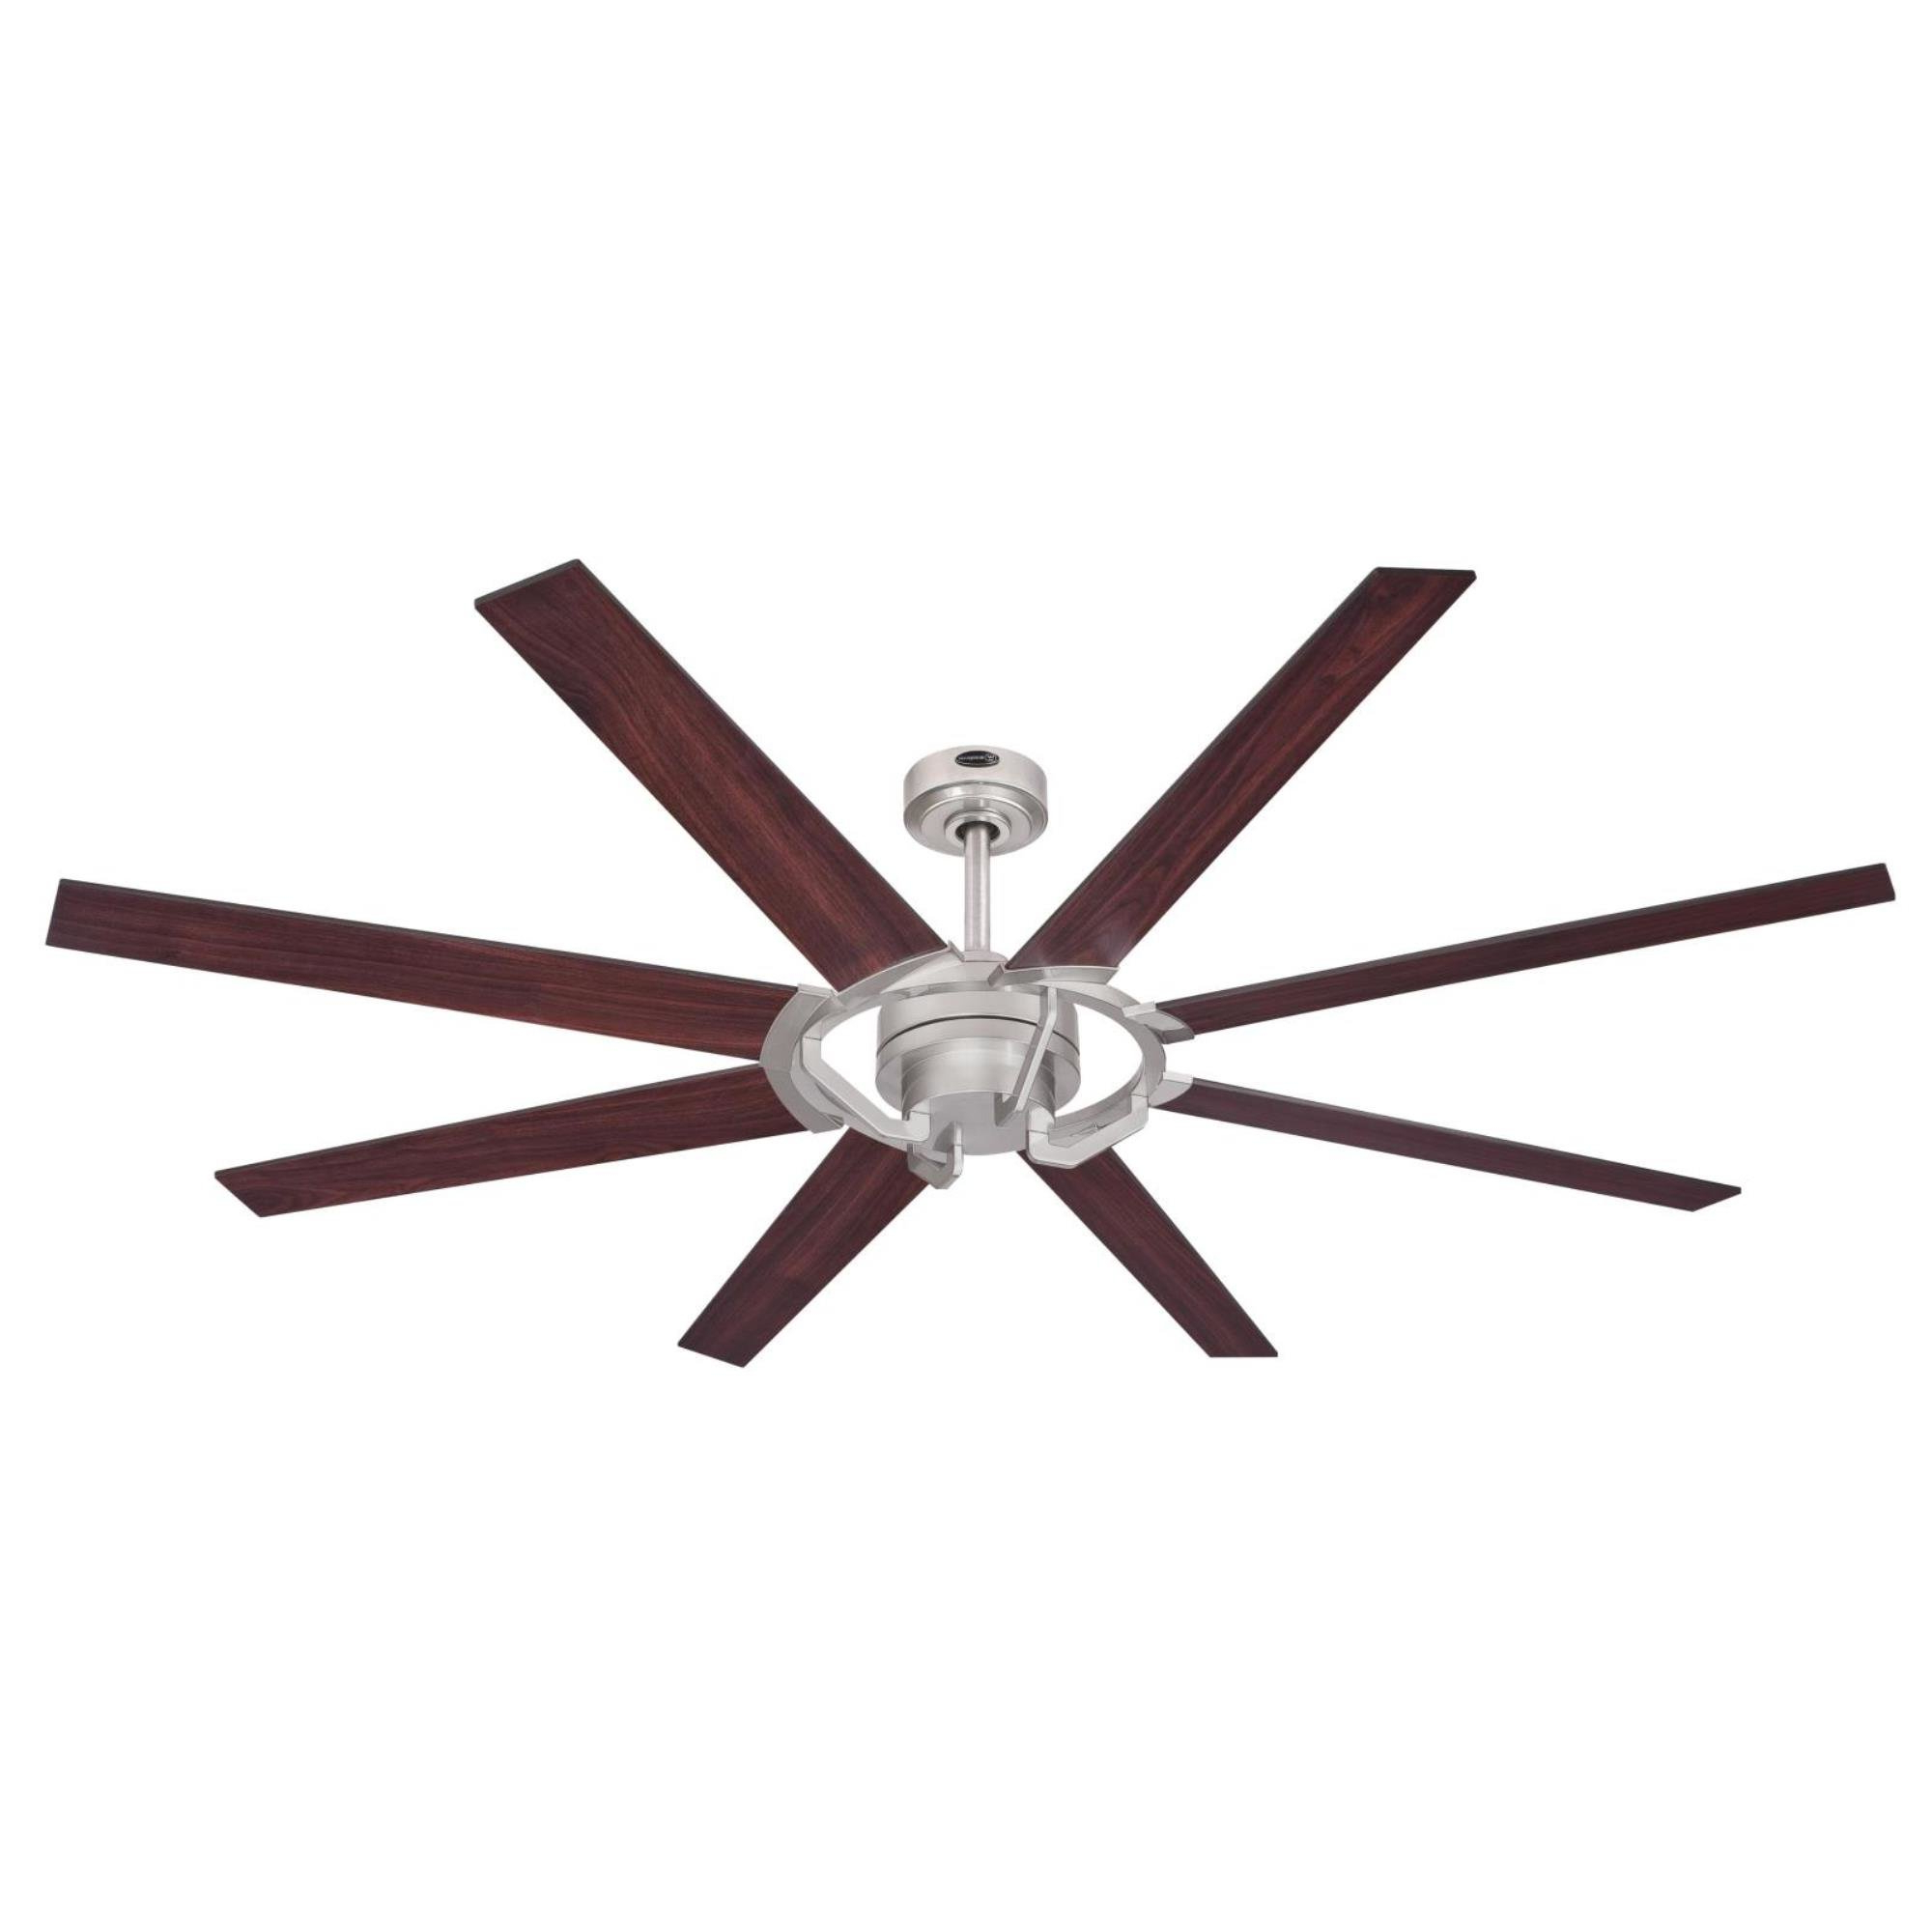 "Most Recent Levon 8 Blade Ceiling Fans Inside 68"" Ennis 8 Blade Ceiling Fan With Remote (View 4 of 20)"